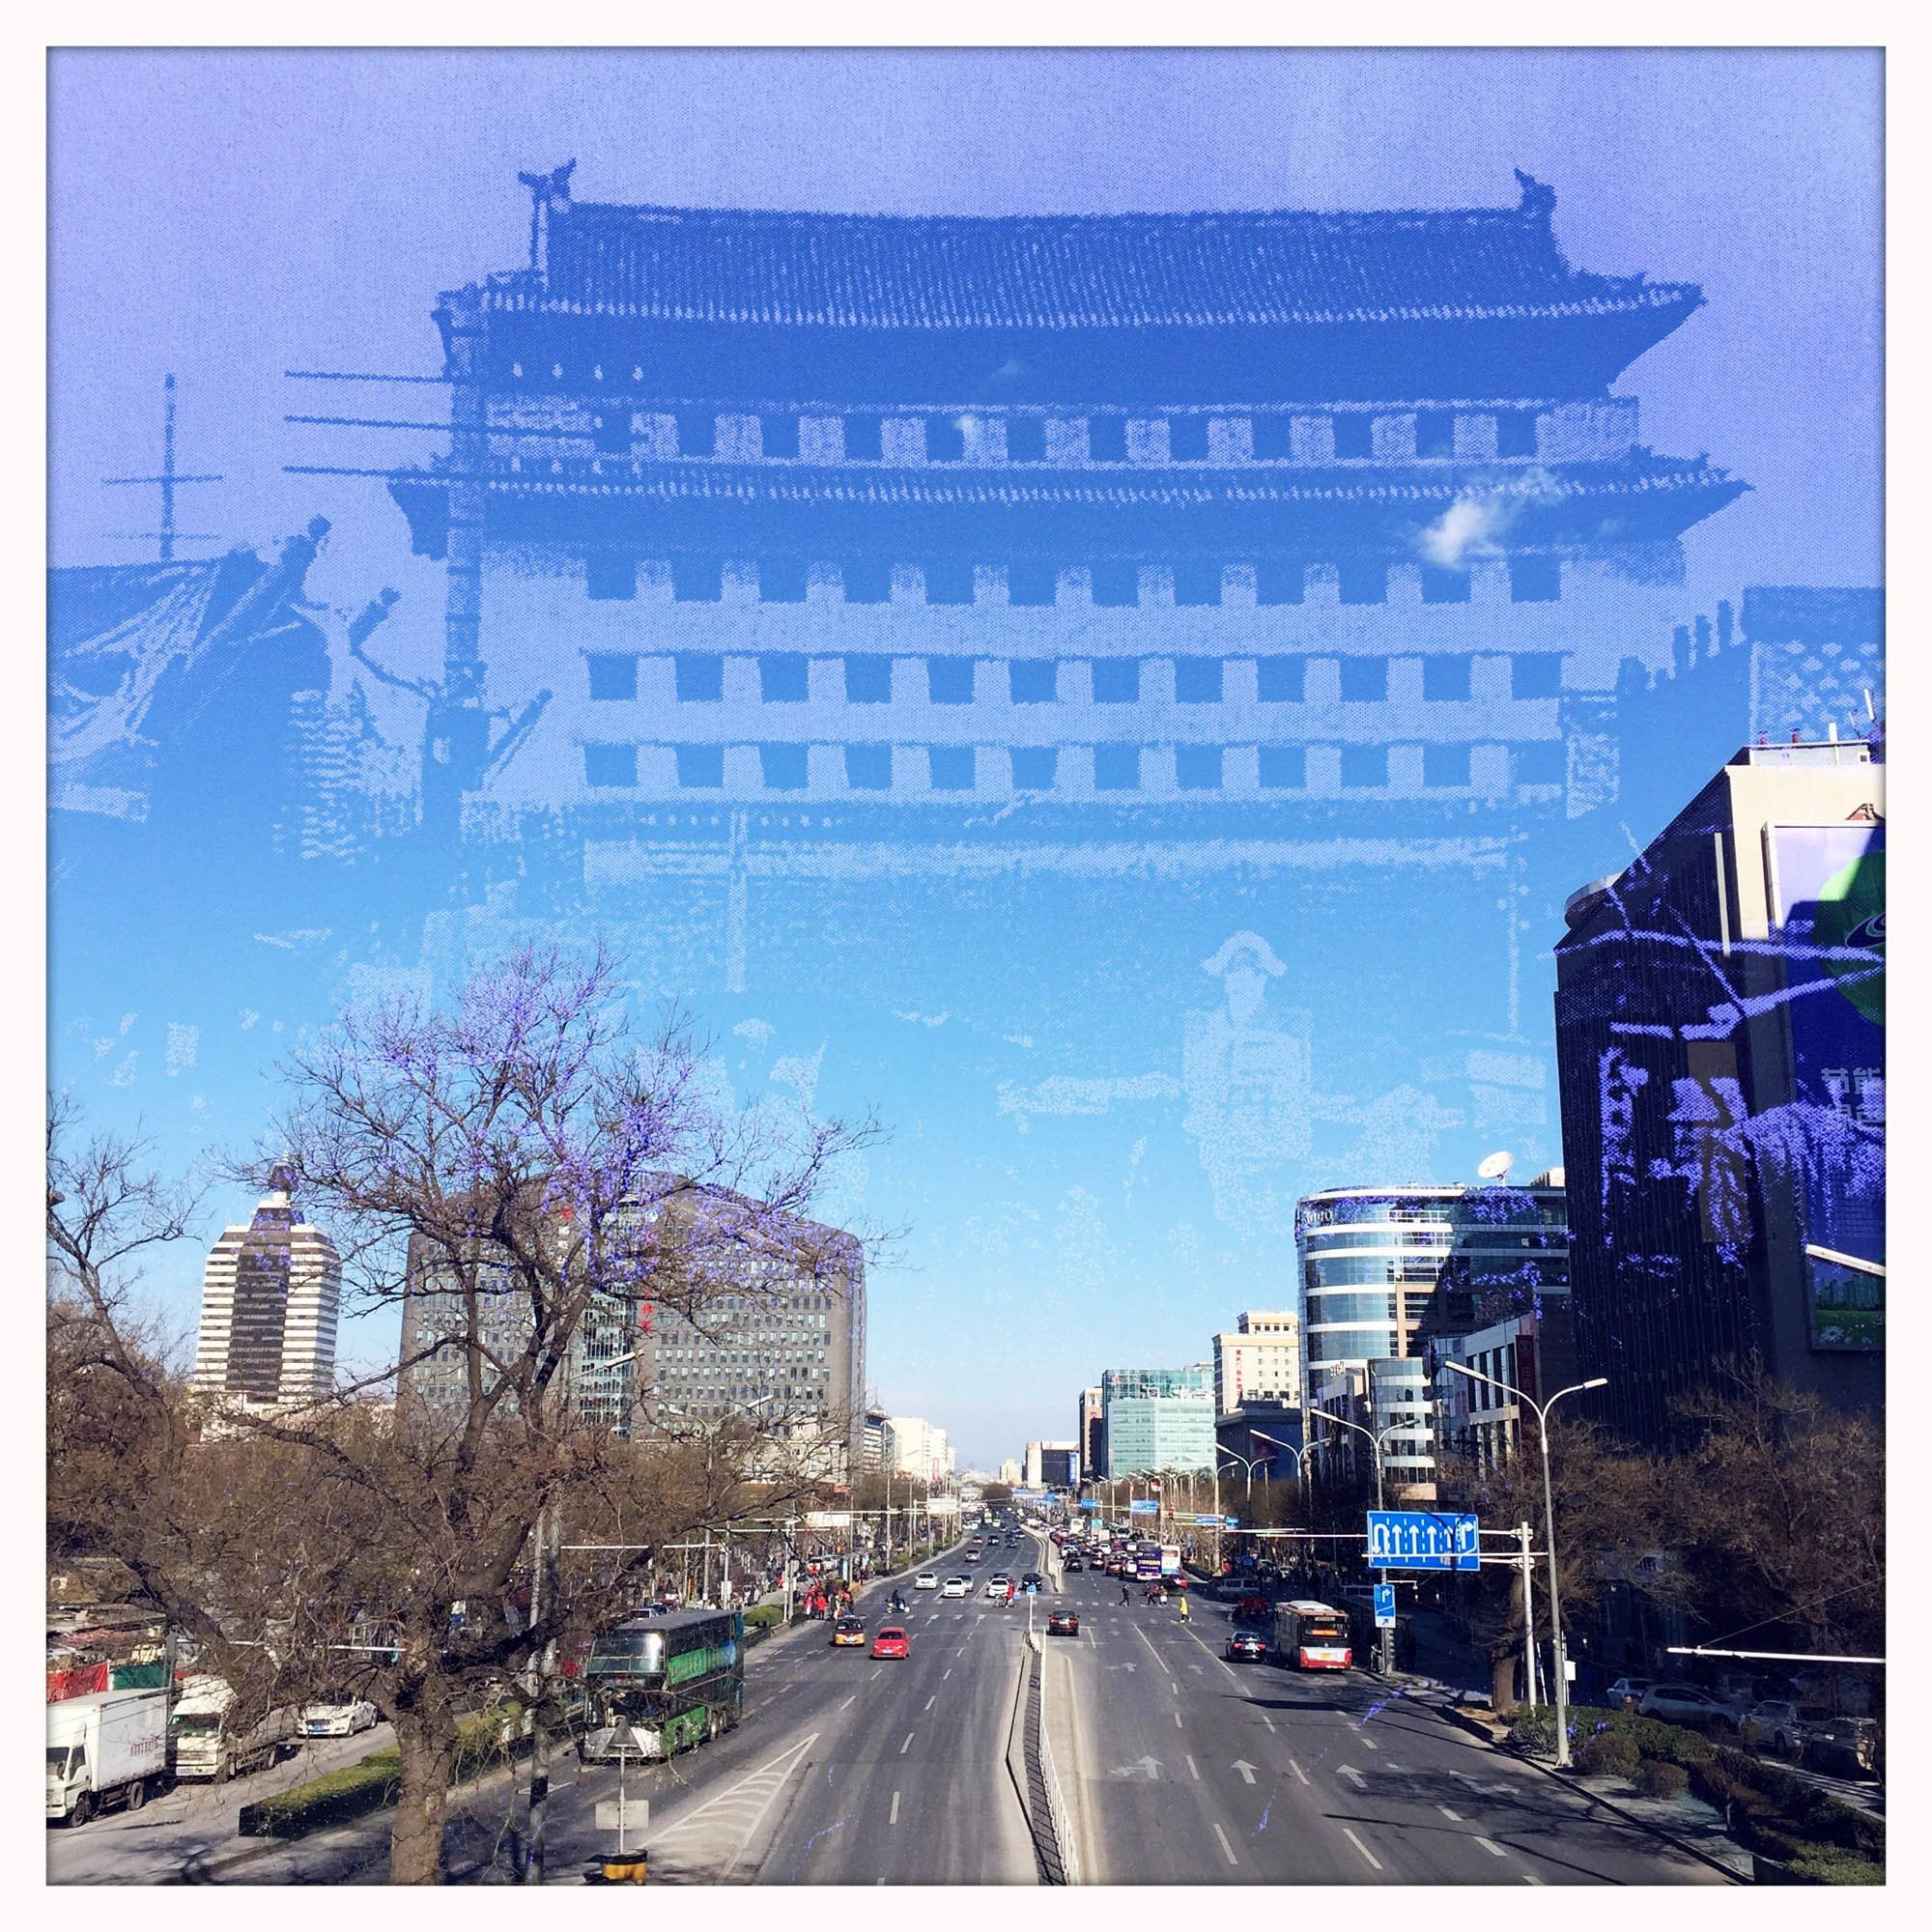 An image of Xuanwumen Gate Tower, which was demolished in 1965, is superimposed on one of Xuanwumen area, now home to ma